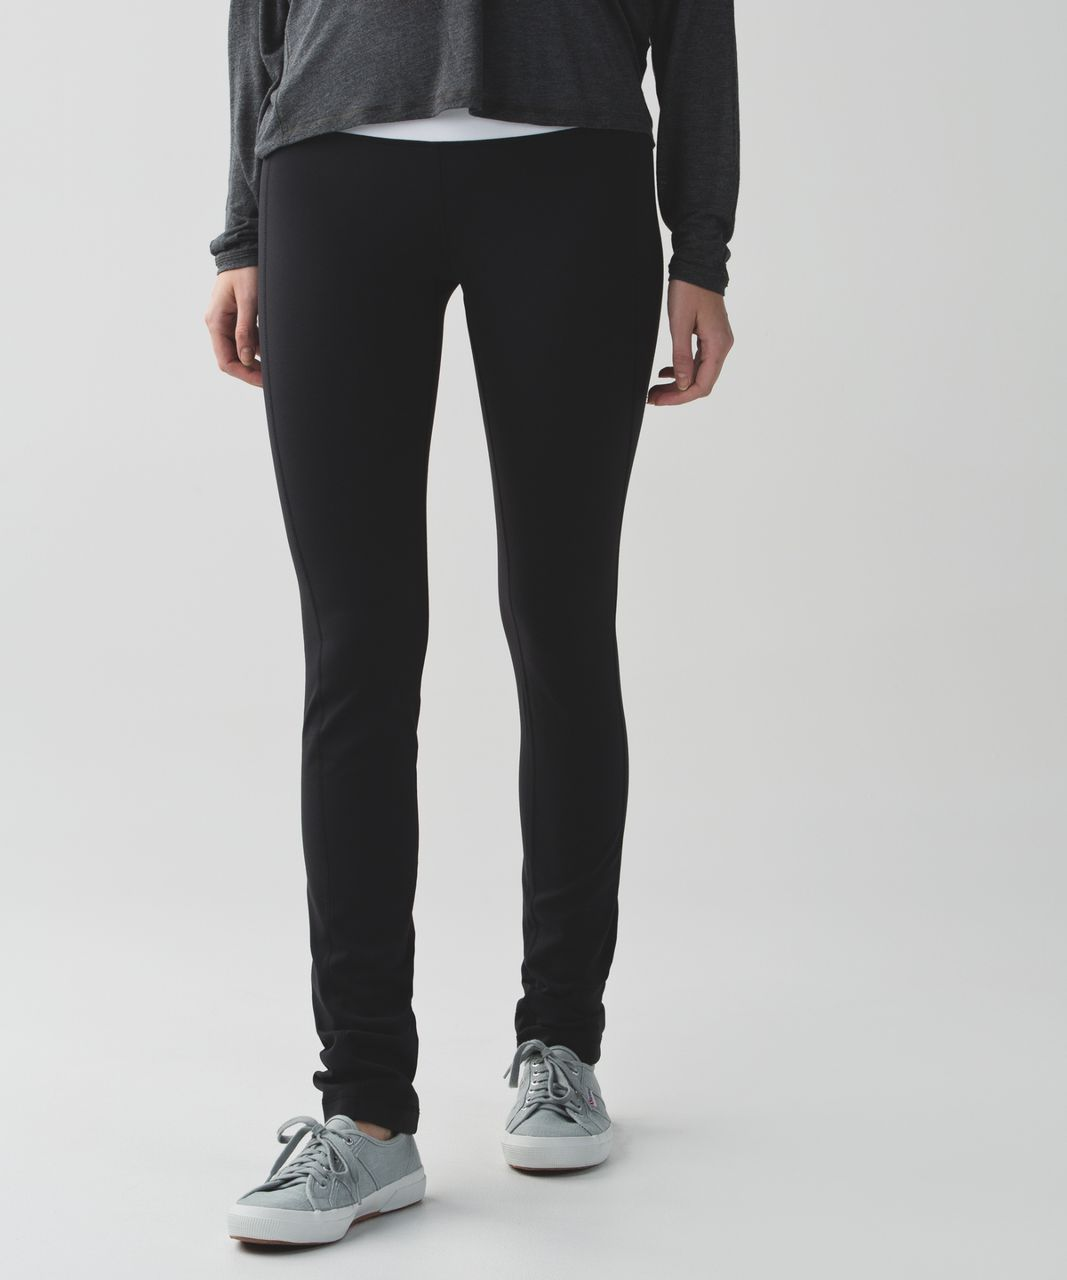 653551335 Lululemon Skinny Groove Pant II  Full-On Luon (Roll Down) - Black   White -  lulu fanatics